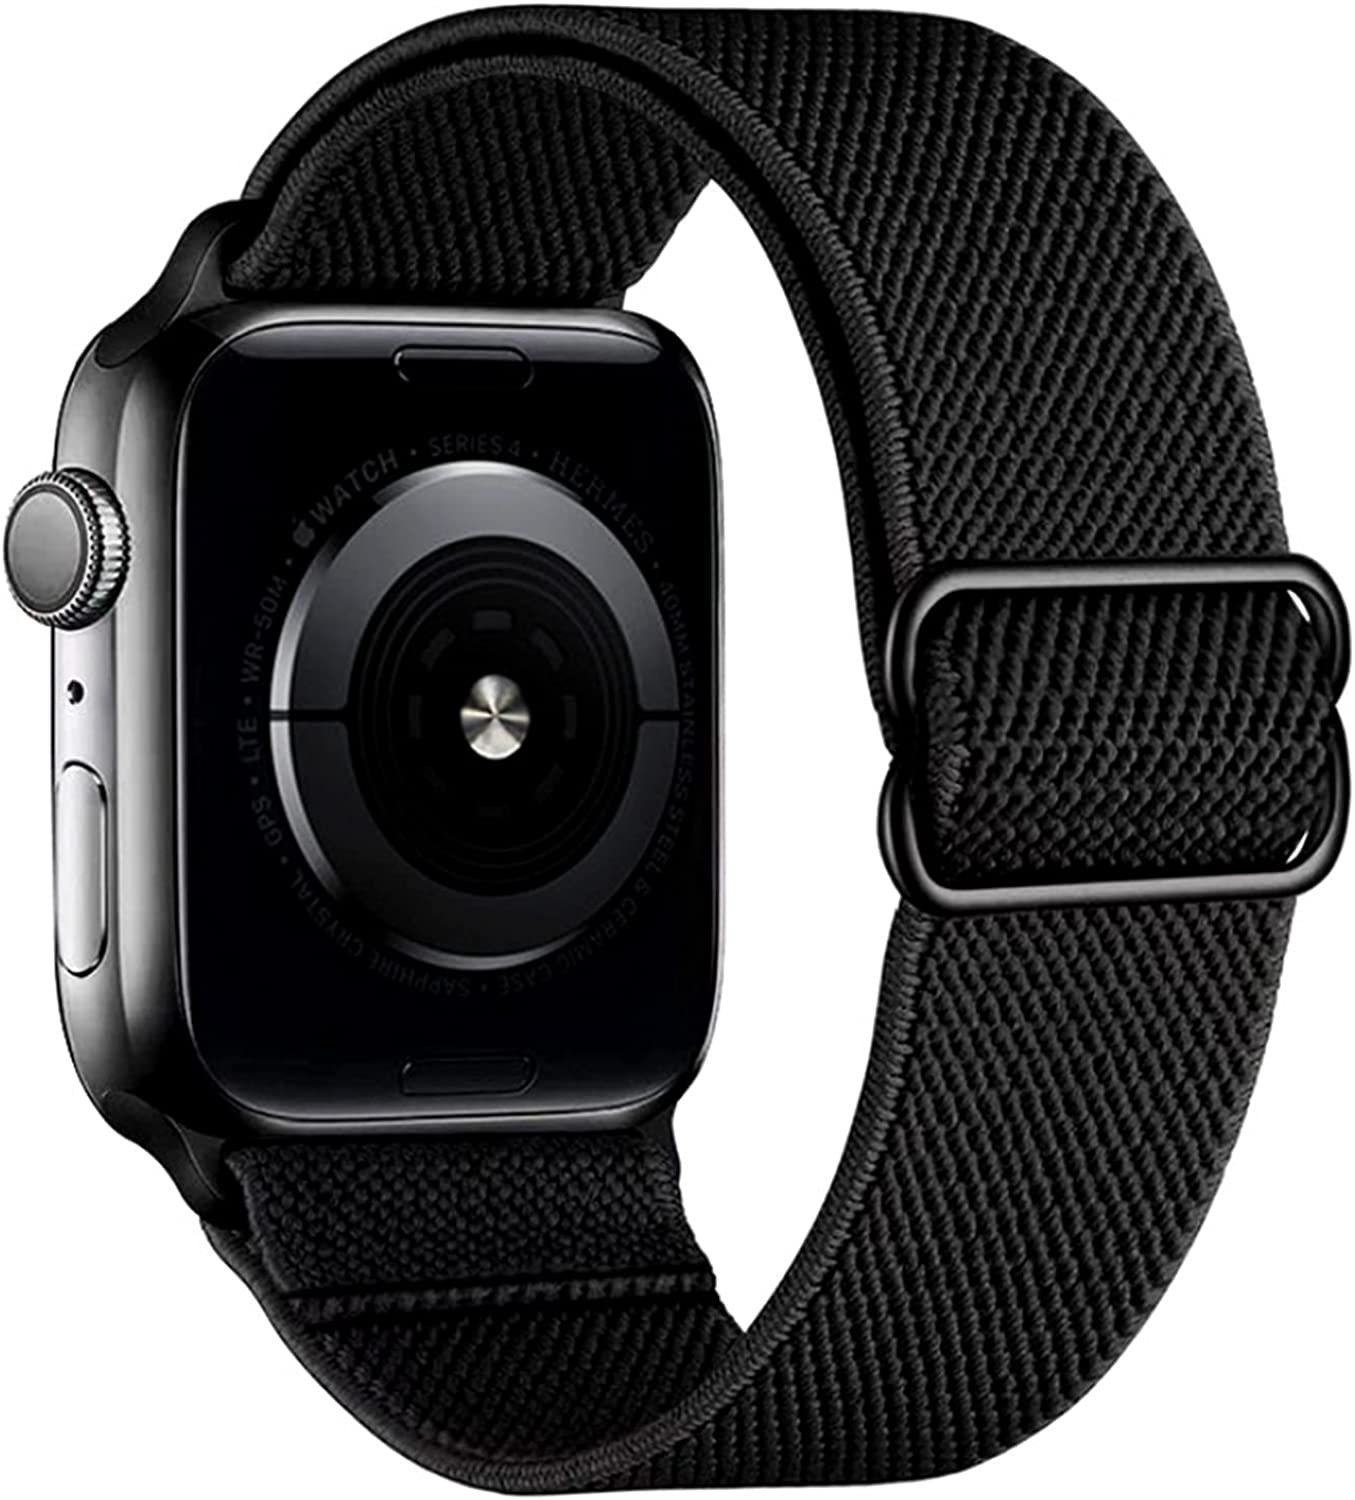 Yaber Stretchy Nylon Solo Loop Bands Compatible with Apple Watch , Adjustable Stretch Braided Sport Elastics Wristband Compatible with iWatch Series 6/5/4/3/2/1 SE